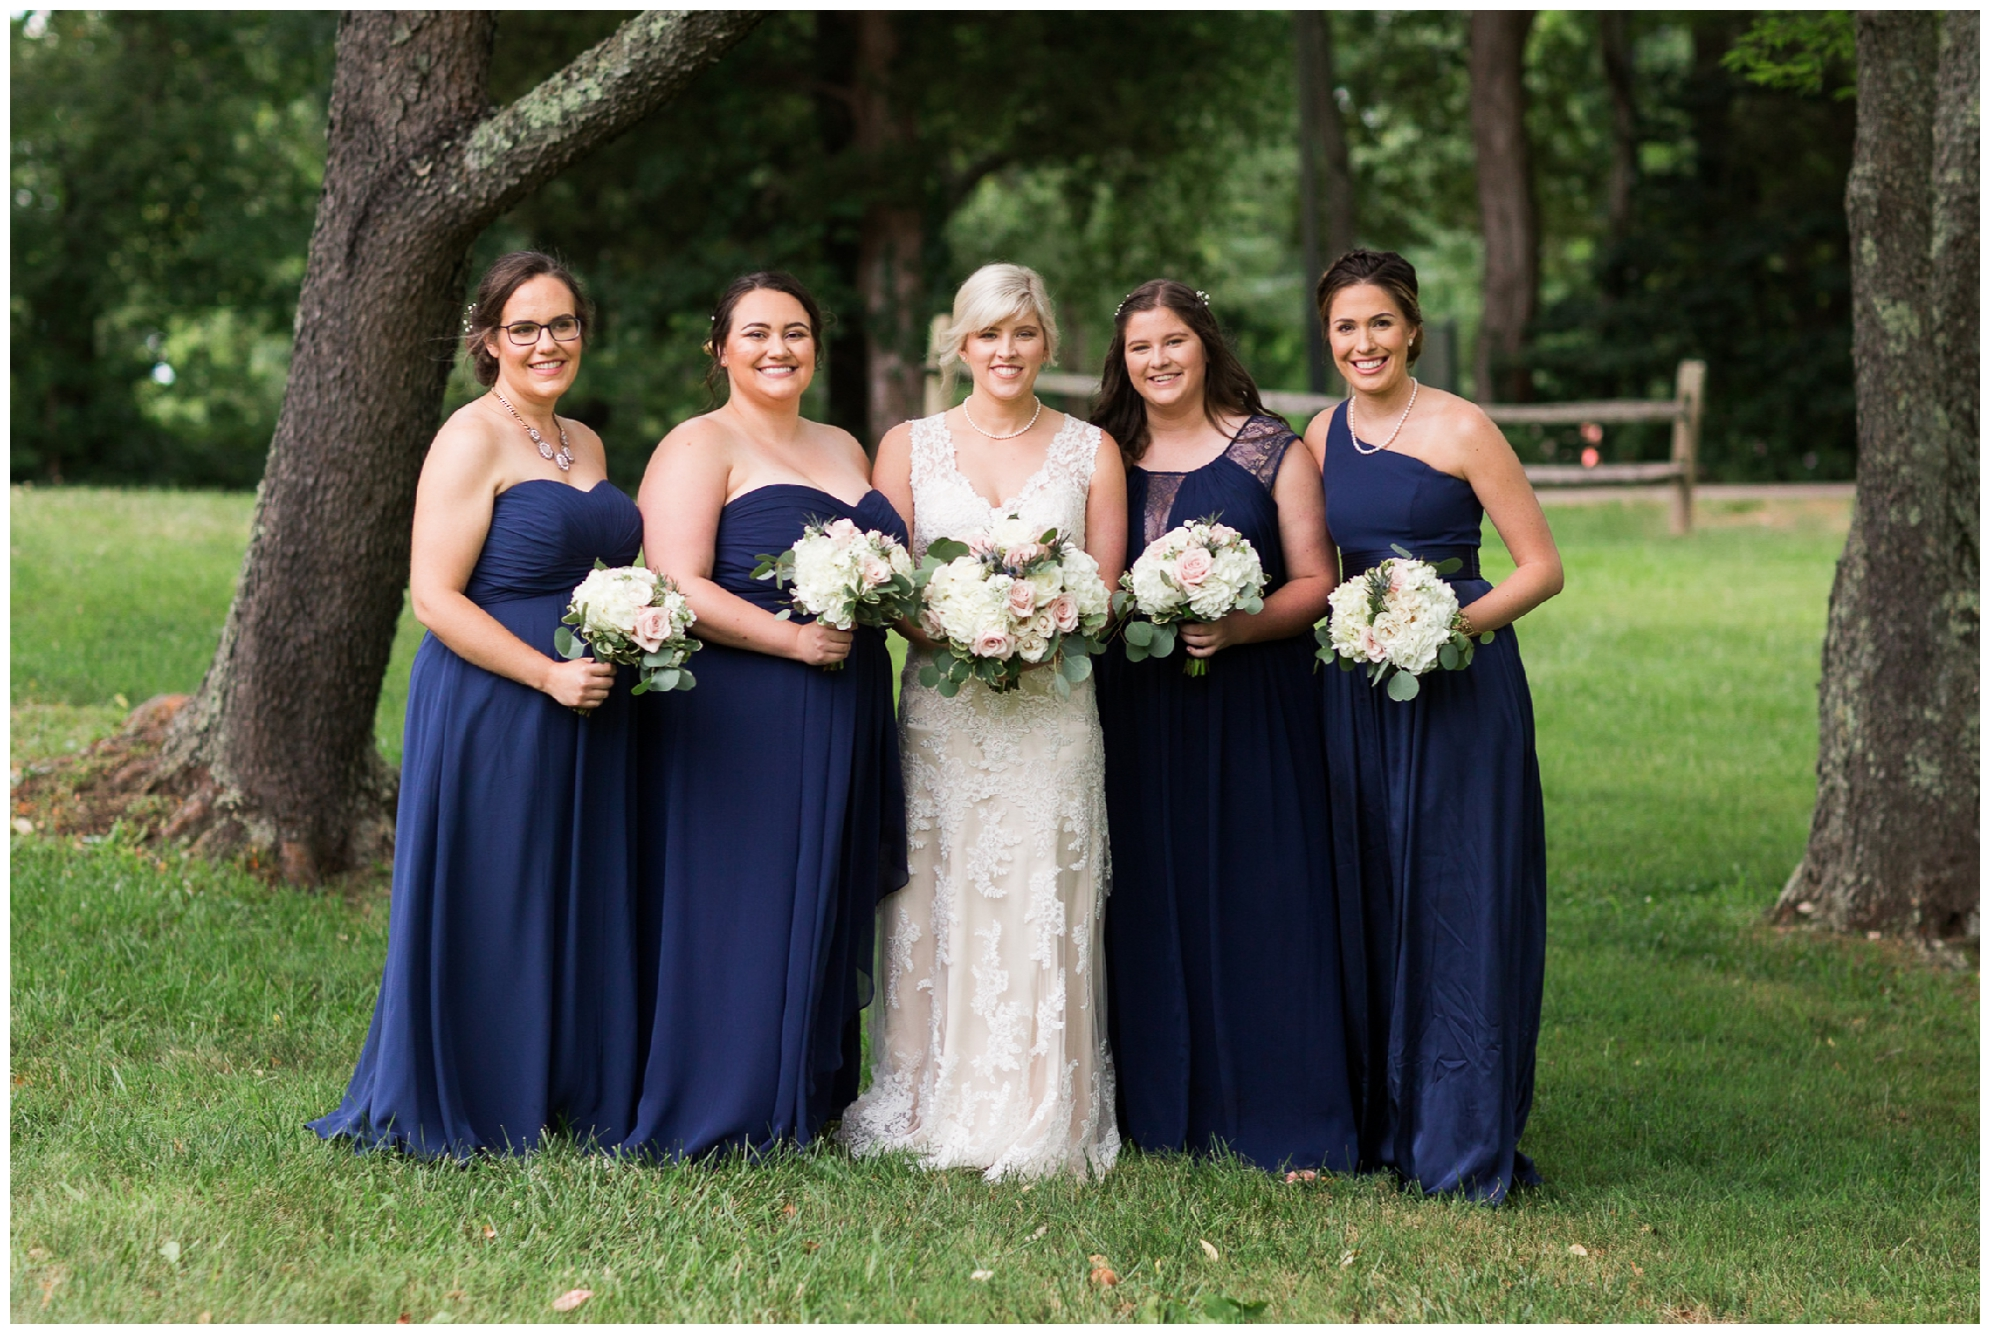 Gorgeous summer wedding at the stunning, waterside Jefferson Patterson Park featuring an outdoor ceremony, a dog guest of honor and sunset photos on the beach!